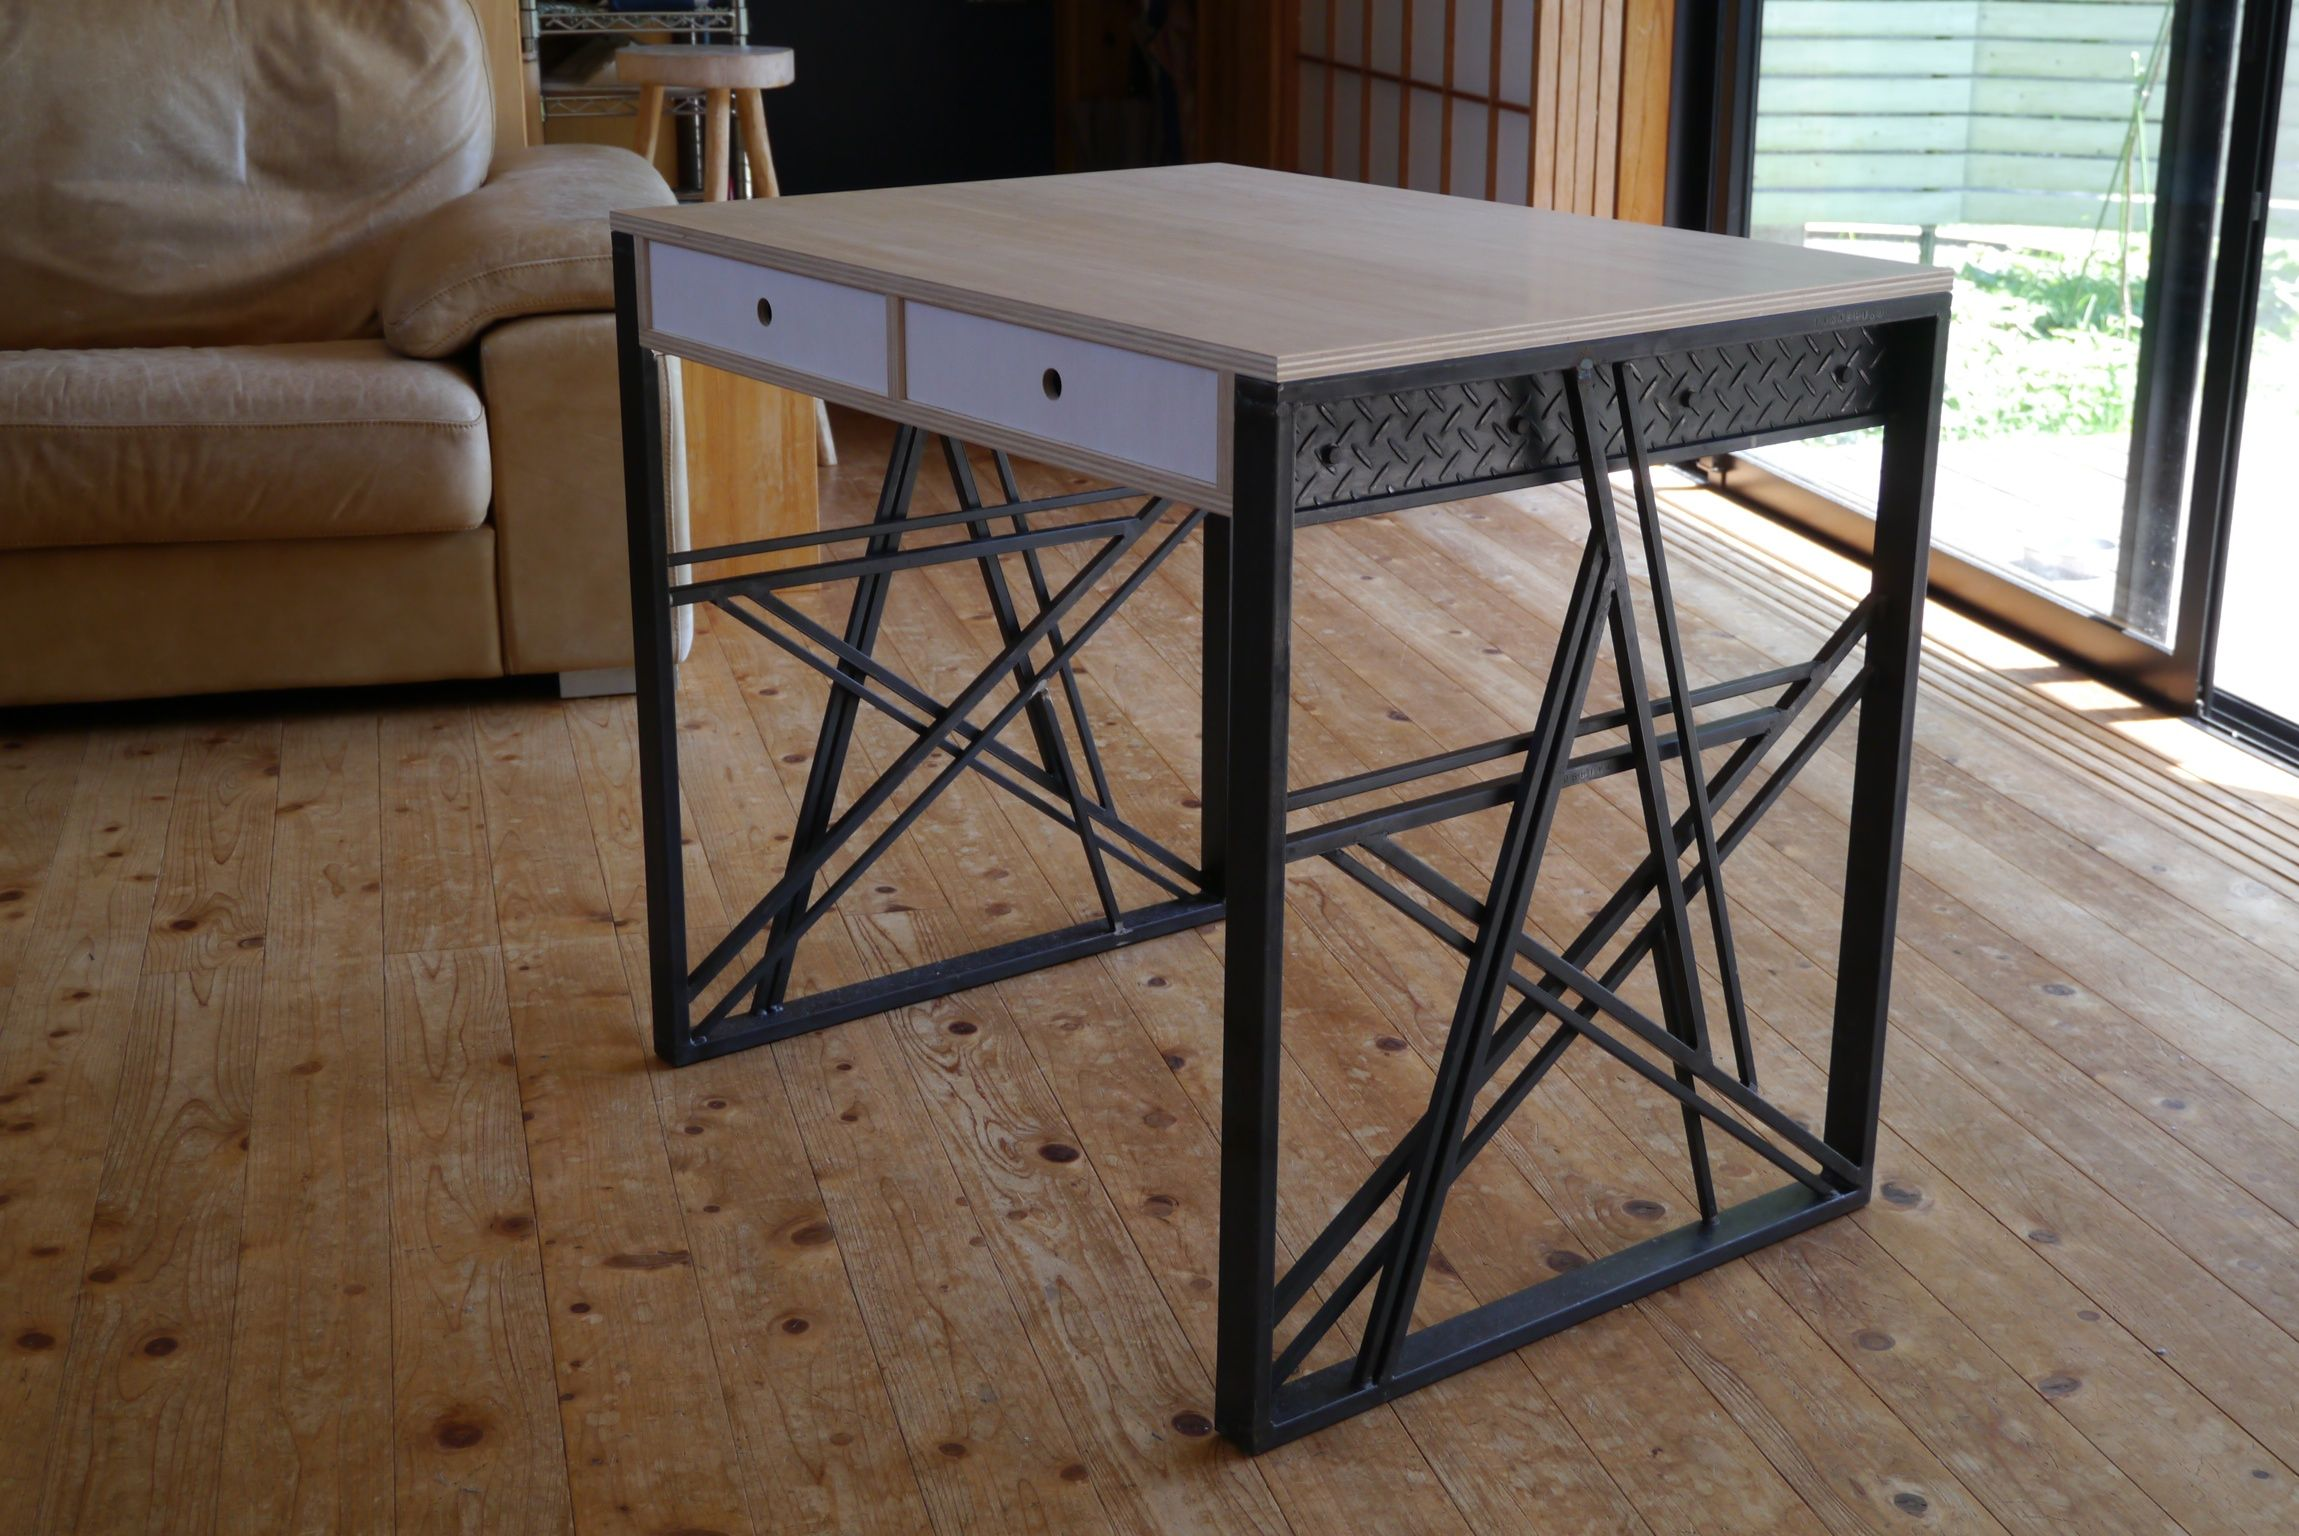 Desk with iron works